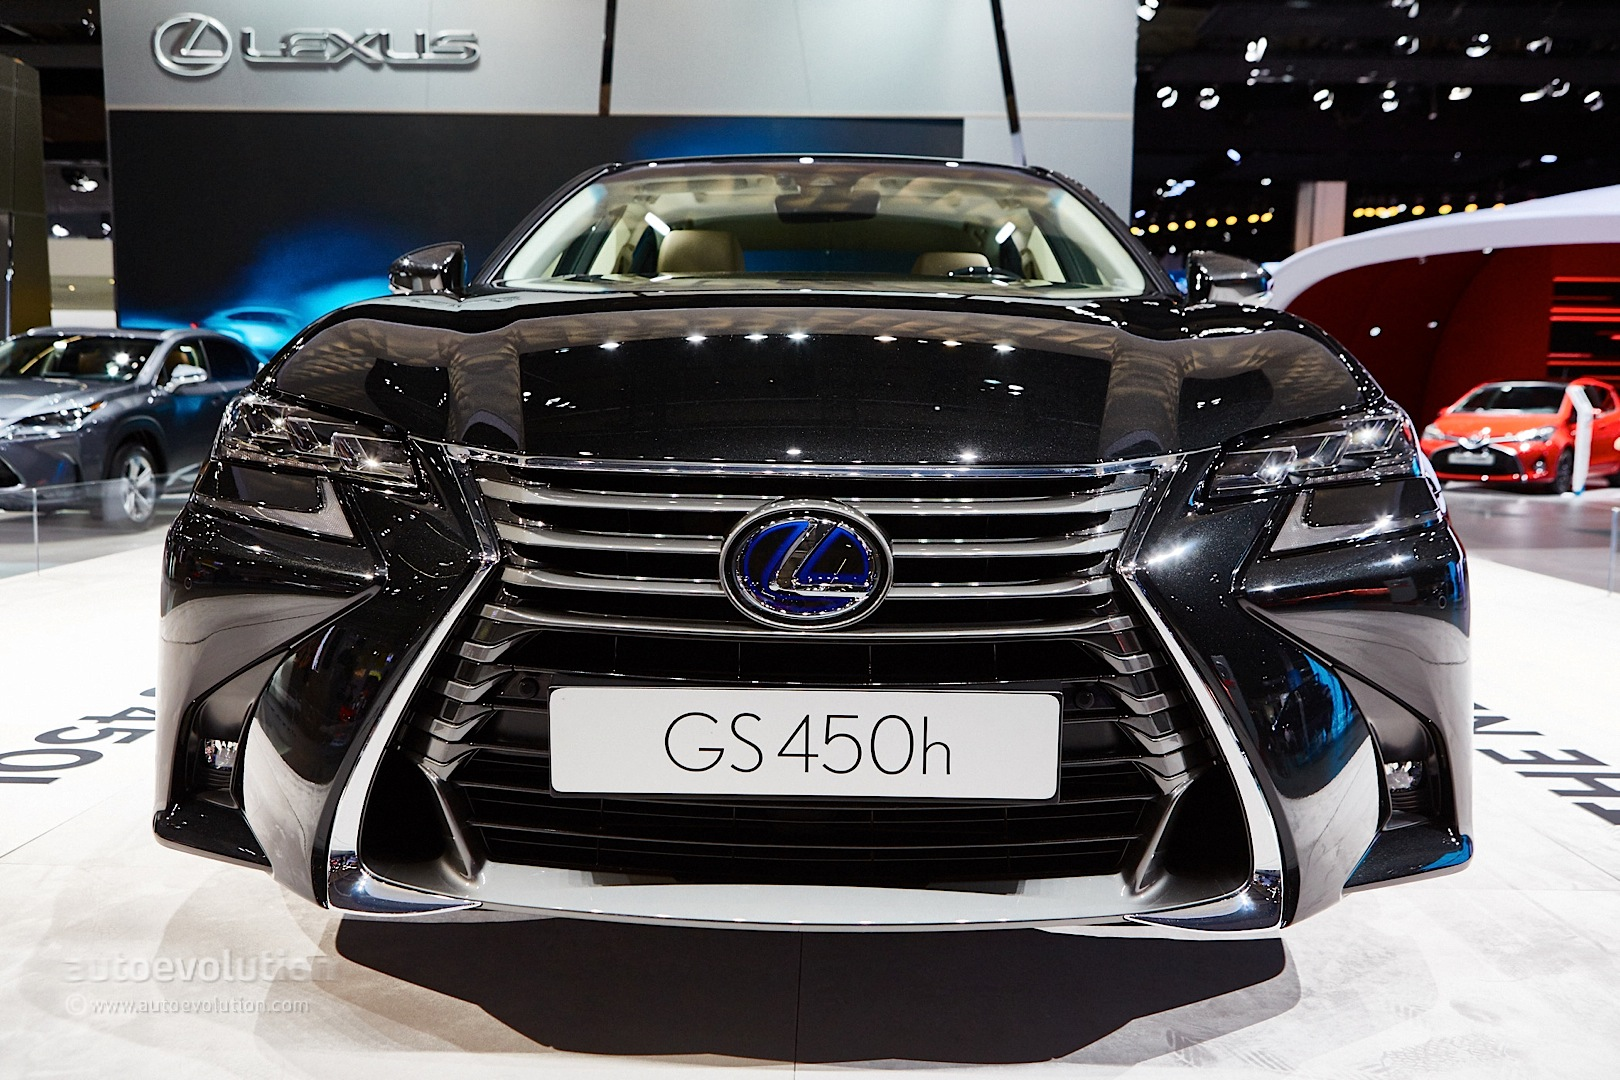 2016 lexus gs 450h facelift debuts with spindle grille 2 0. Black Bedroom Furniture Sets. Home Design Ideas